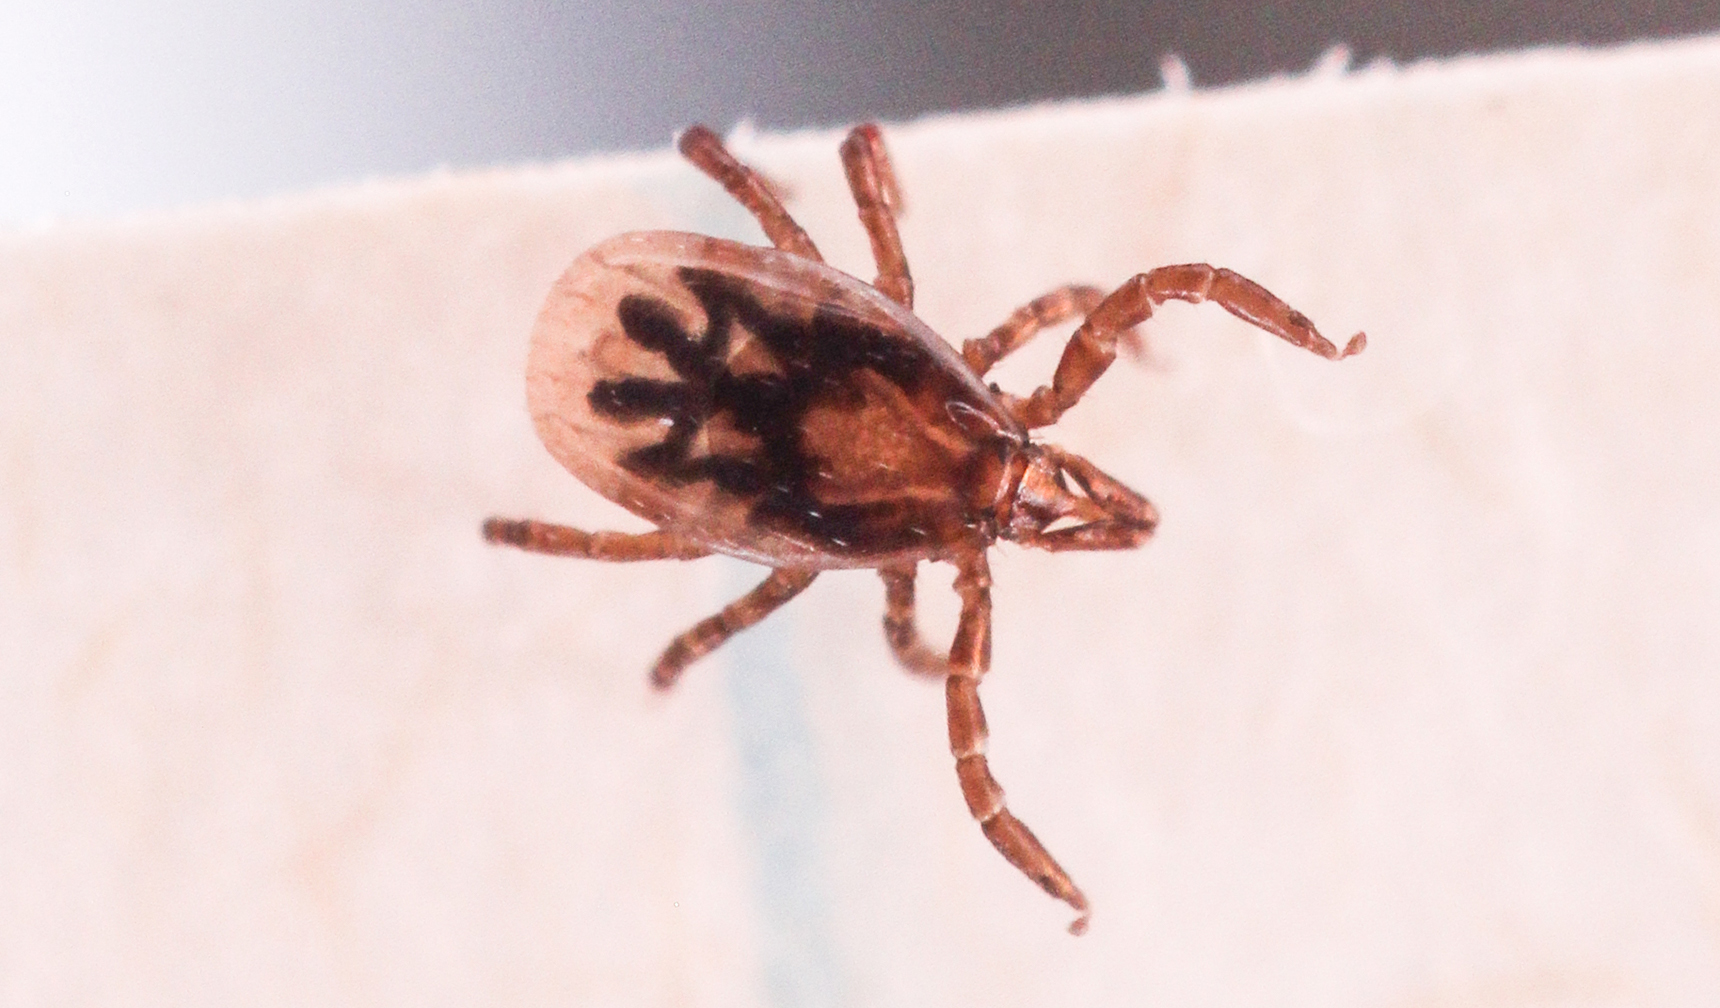 What does an engorged deer tick look like 10